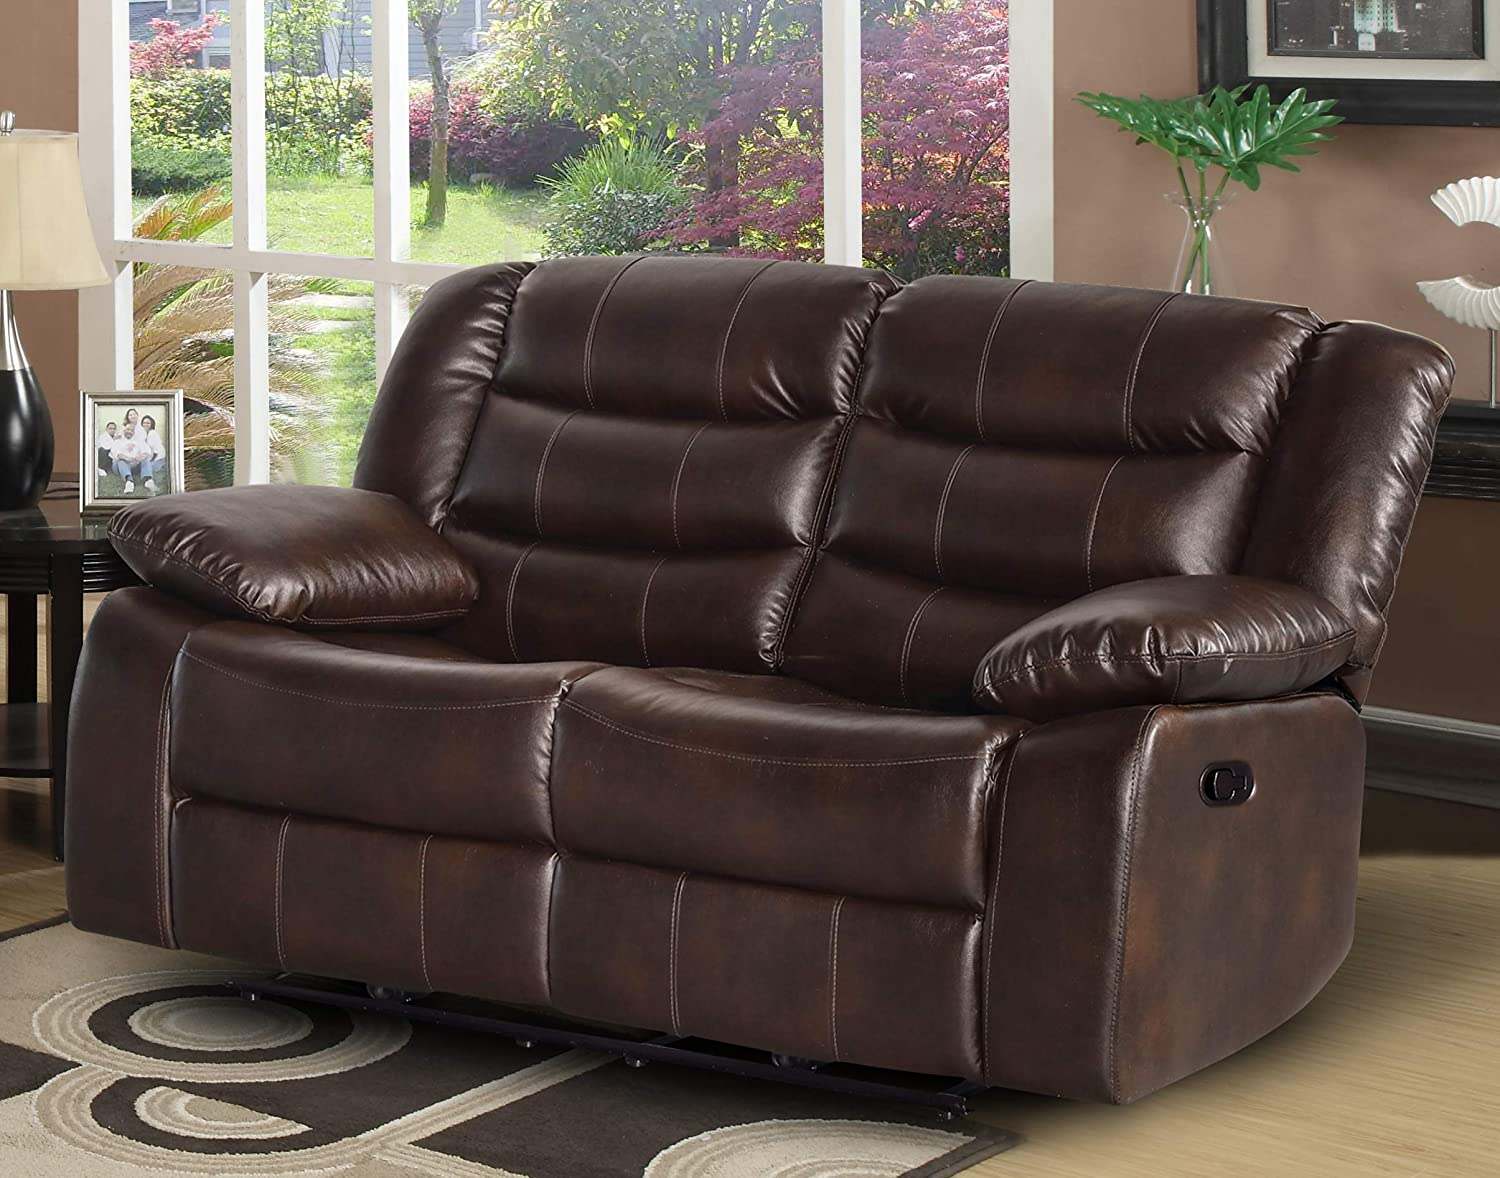 35.25 Container Furniture Direct Adeline Mid Century Modern Leatherette Living Room Reclining Chair Brown